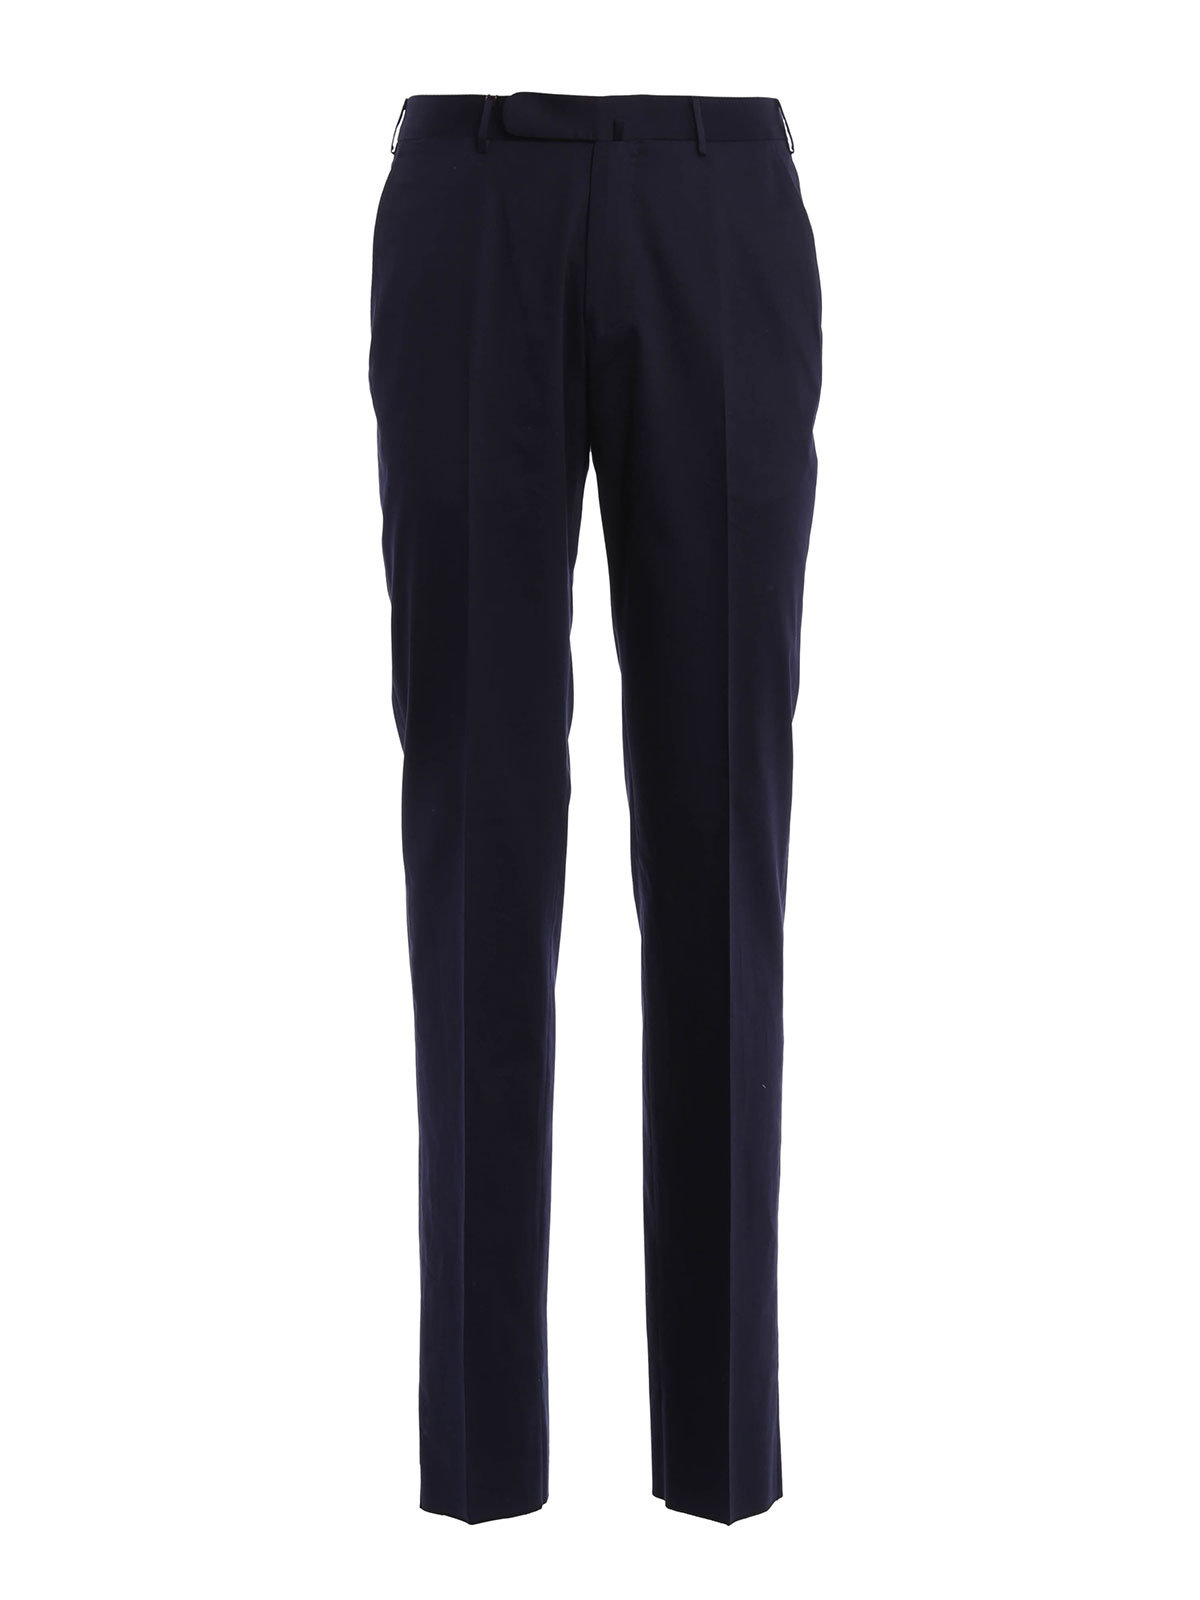 Ermenegildo Zegna - Cotton tailored trousers